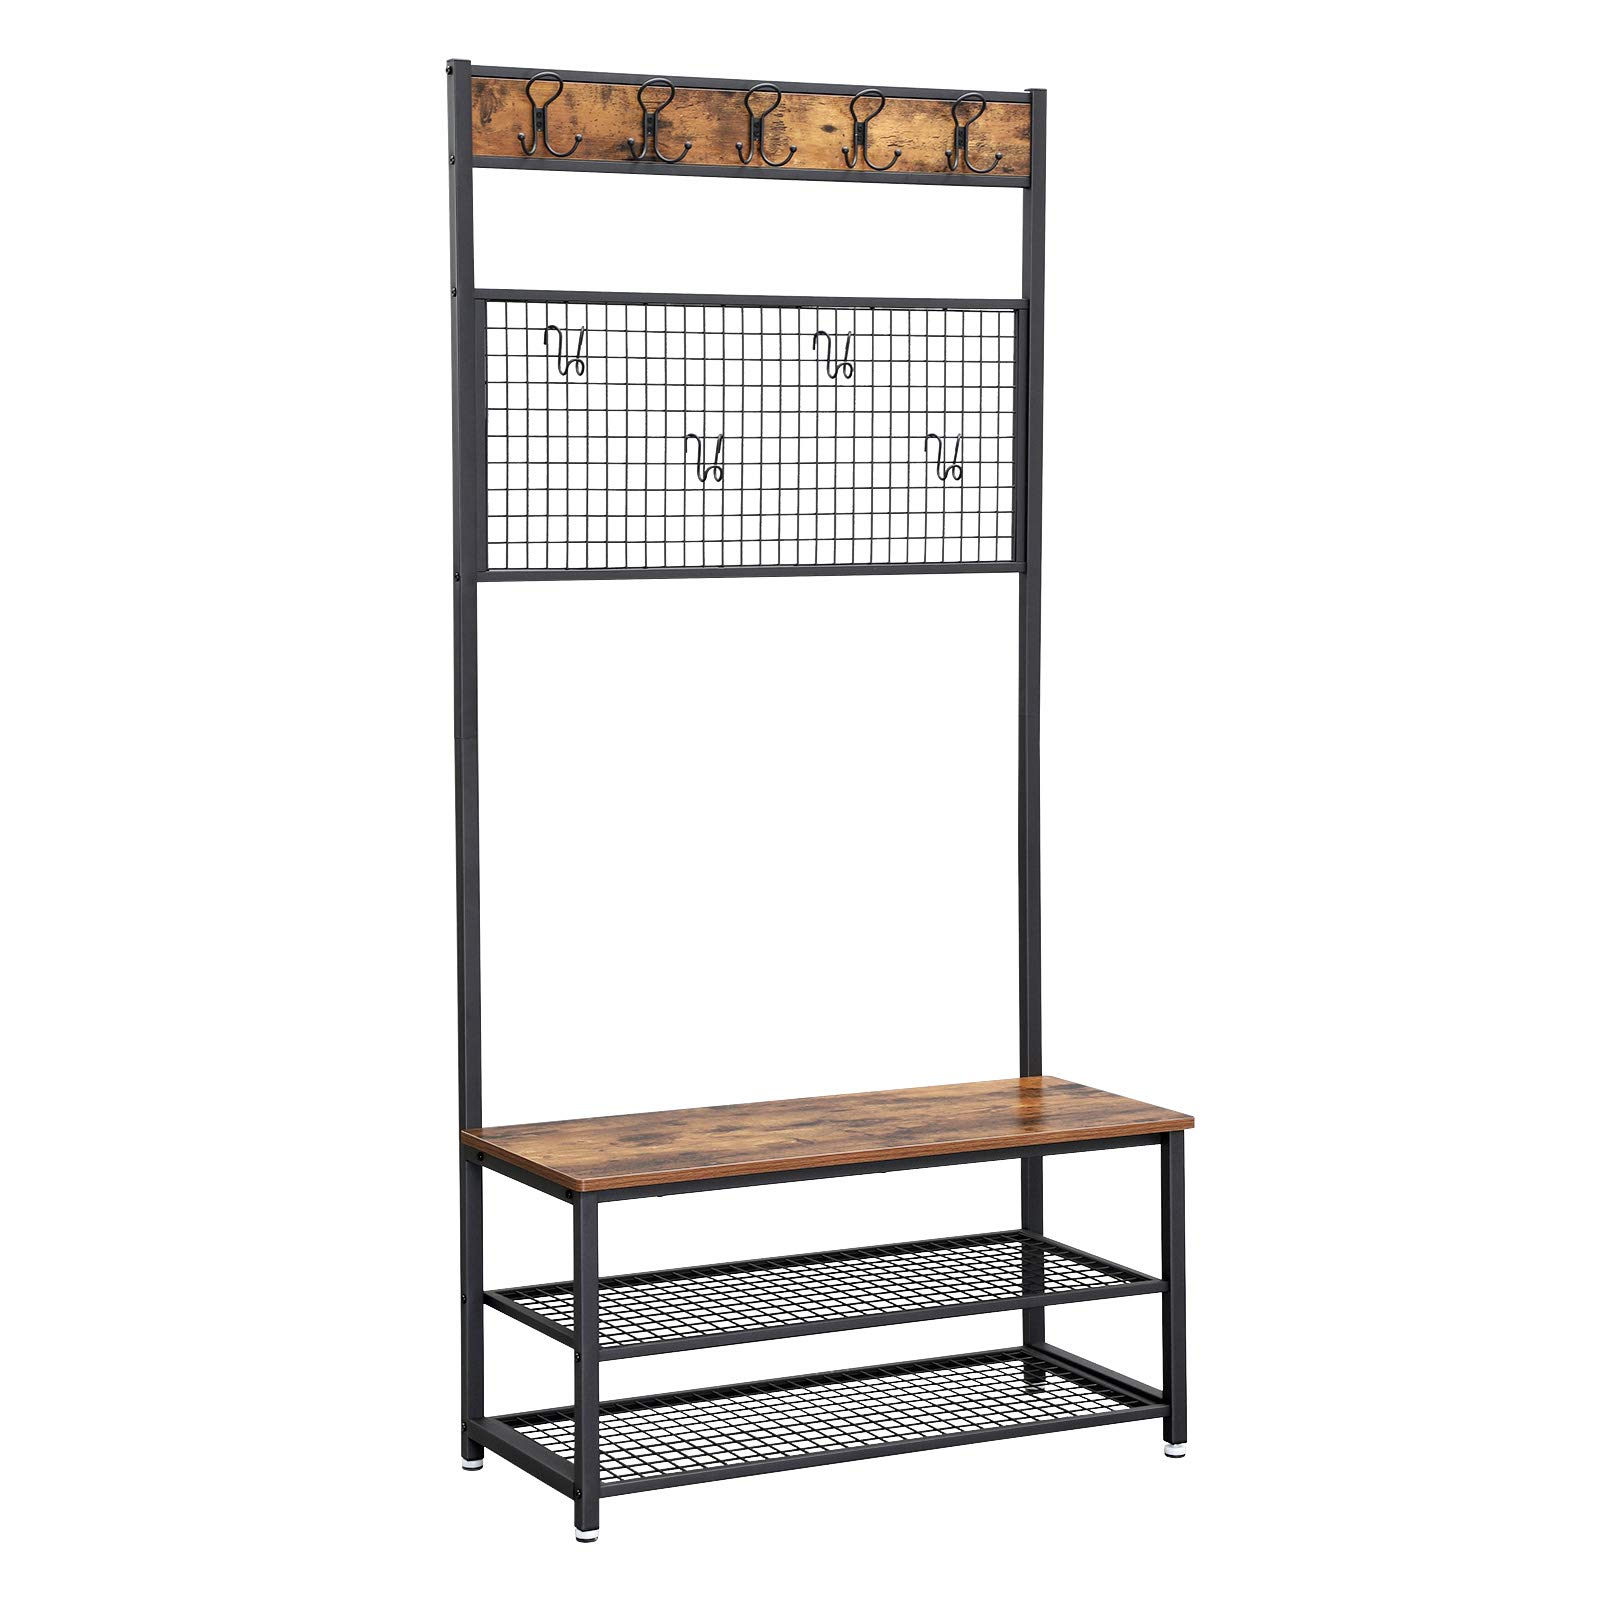 VASAGLE Industrial Coat Stand, Shoe Rack Bench with Grid Memo Board, 9 Hooks and Storage Shelves, Hall Tree with Stable Metal Frame, Rustic Brown UHSR46BX by VASAGLE